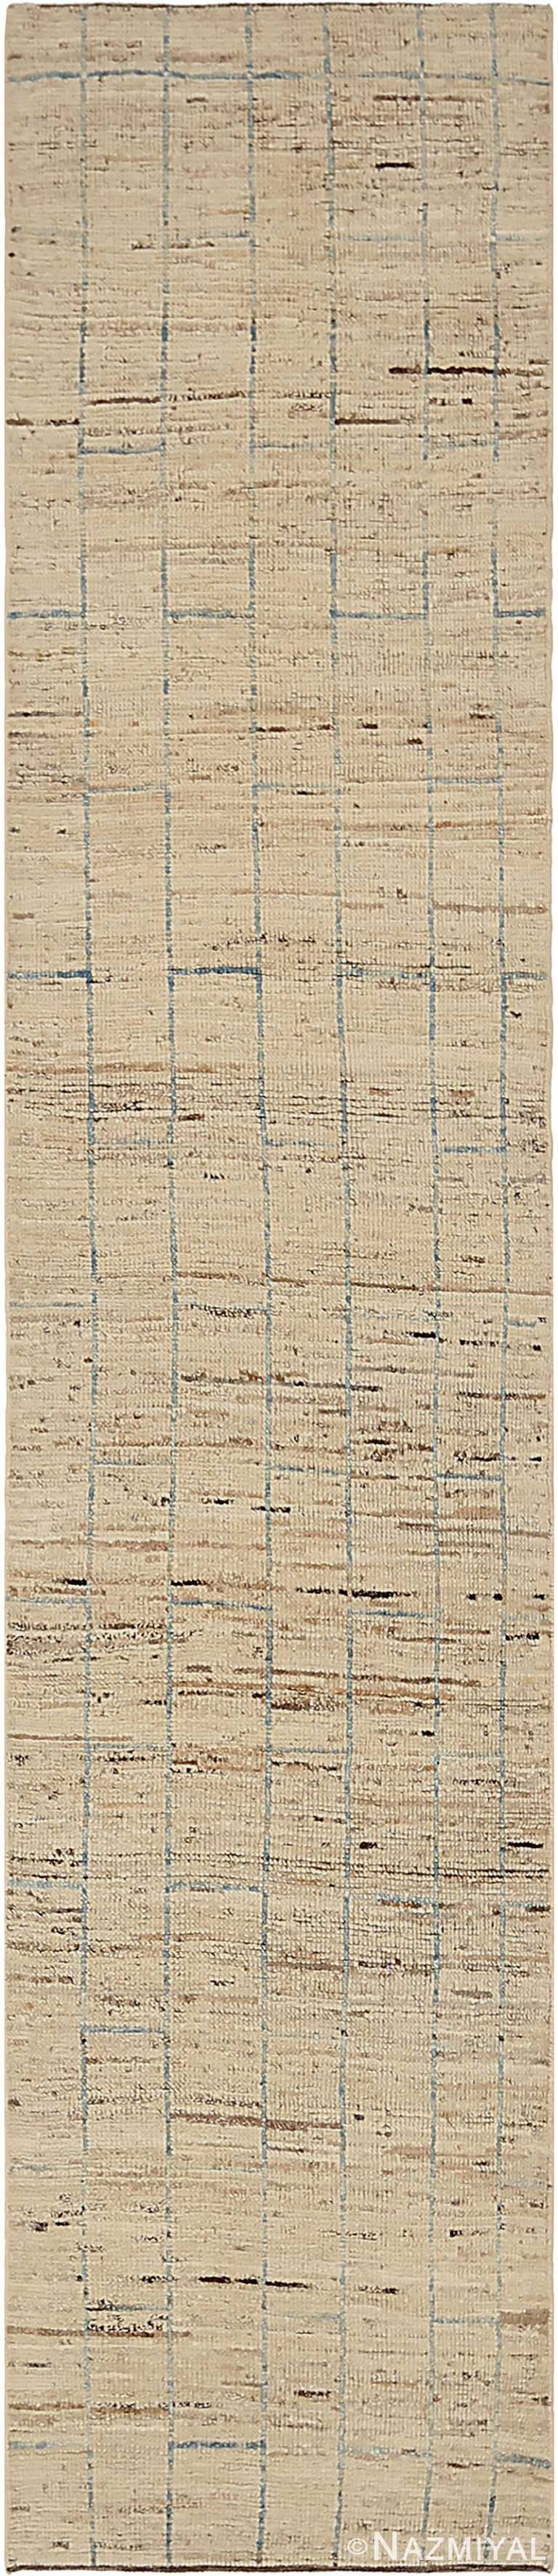 Cream Modern Moroccan Style Runner Rug 60337 by Nazmiyal NYC